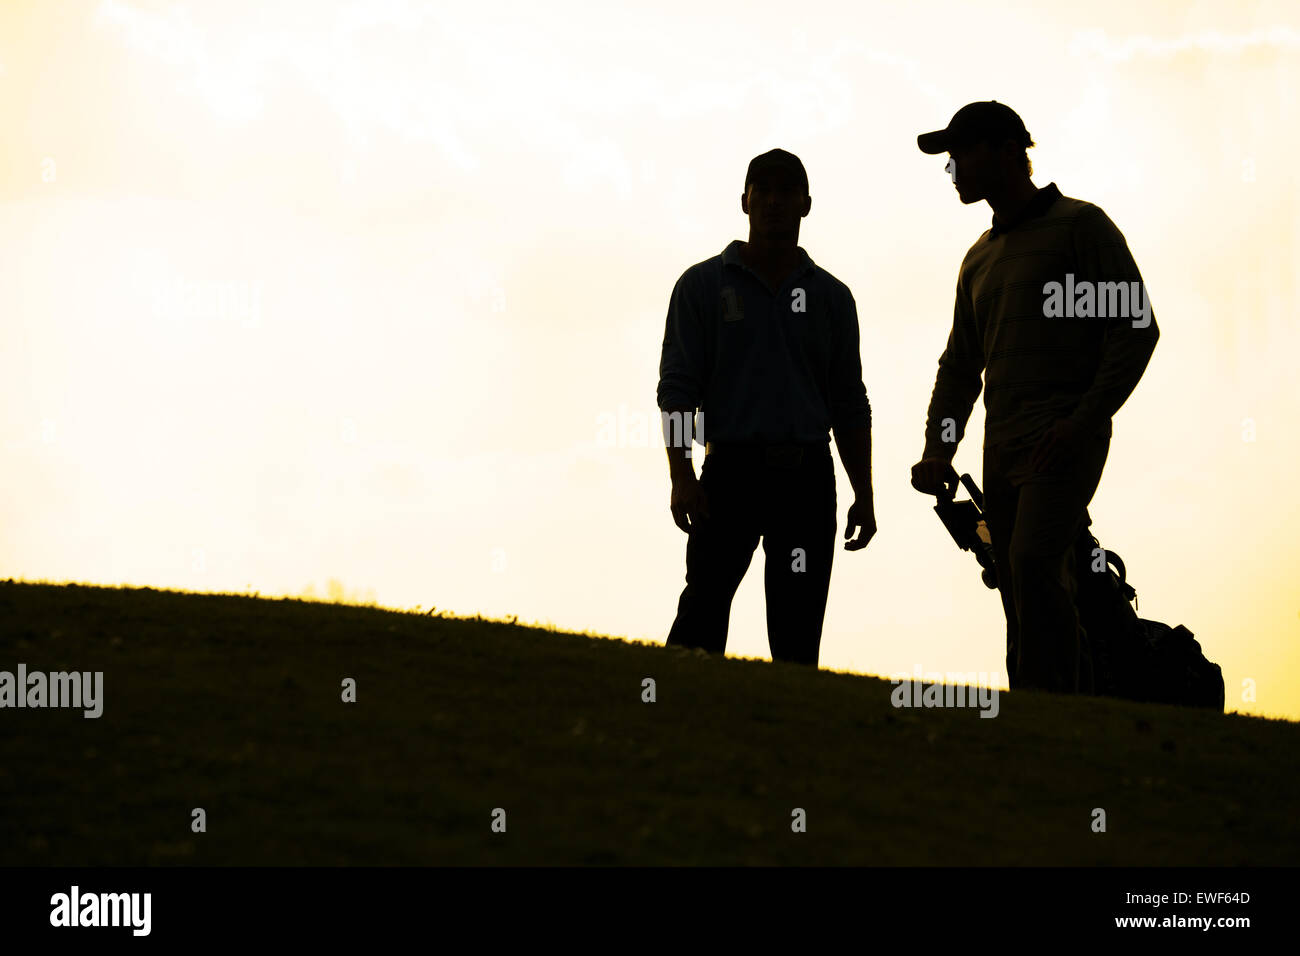 Silhouette of young men standing in golf course with trolley - Stock Image